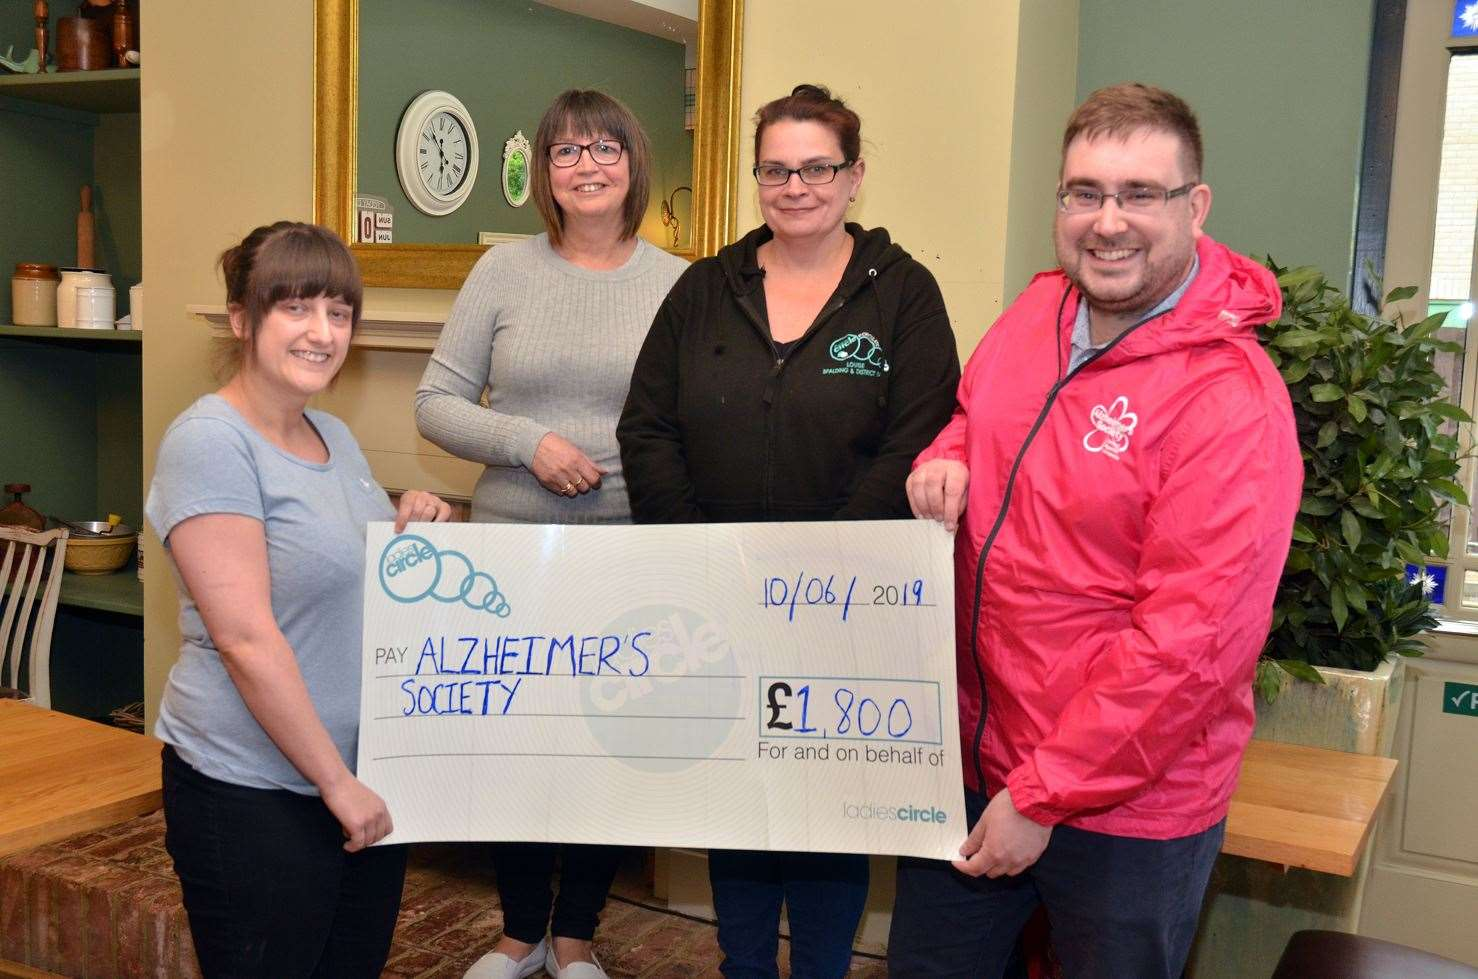 Spalding and District Ladies' Circle members (from left) Amy Darlow, Ann Darlow and Louise Luck present £1,800 to Alzheimers Society community fundraiser for East Midlands Olly Larkin.